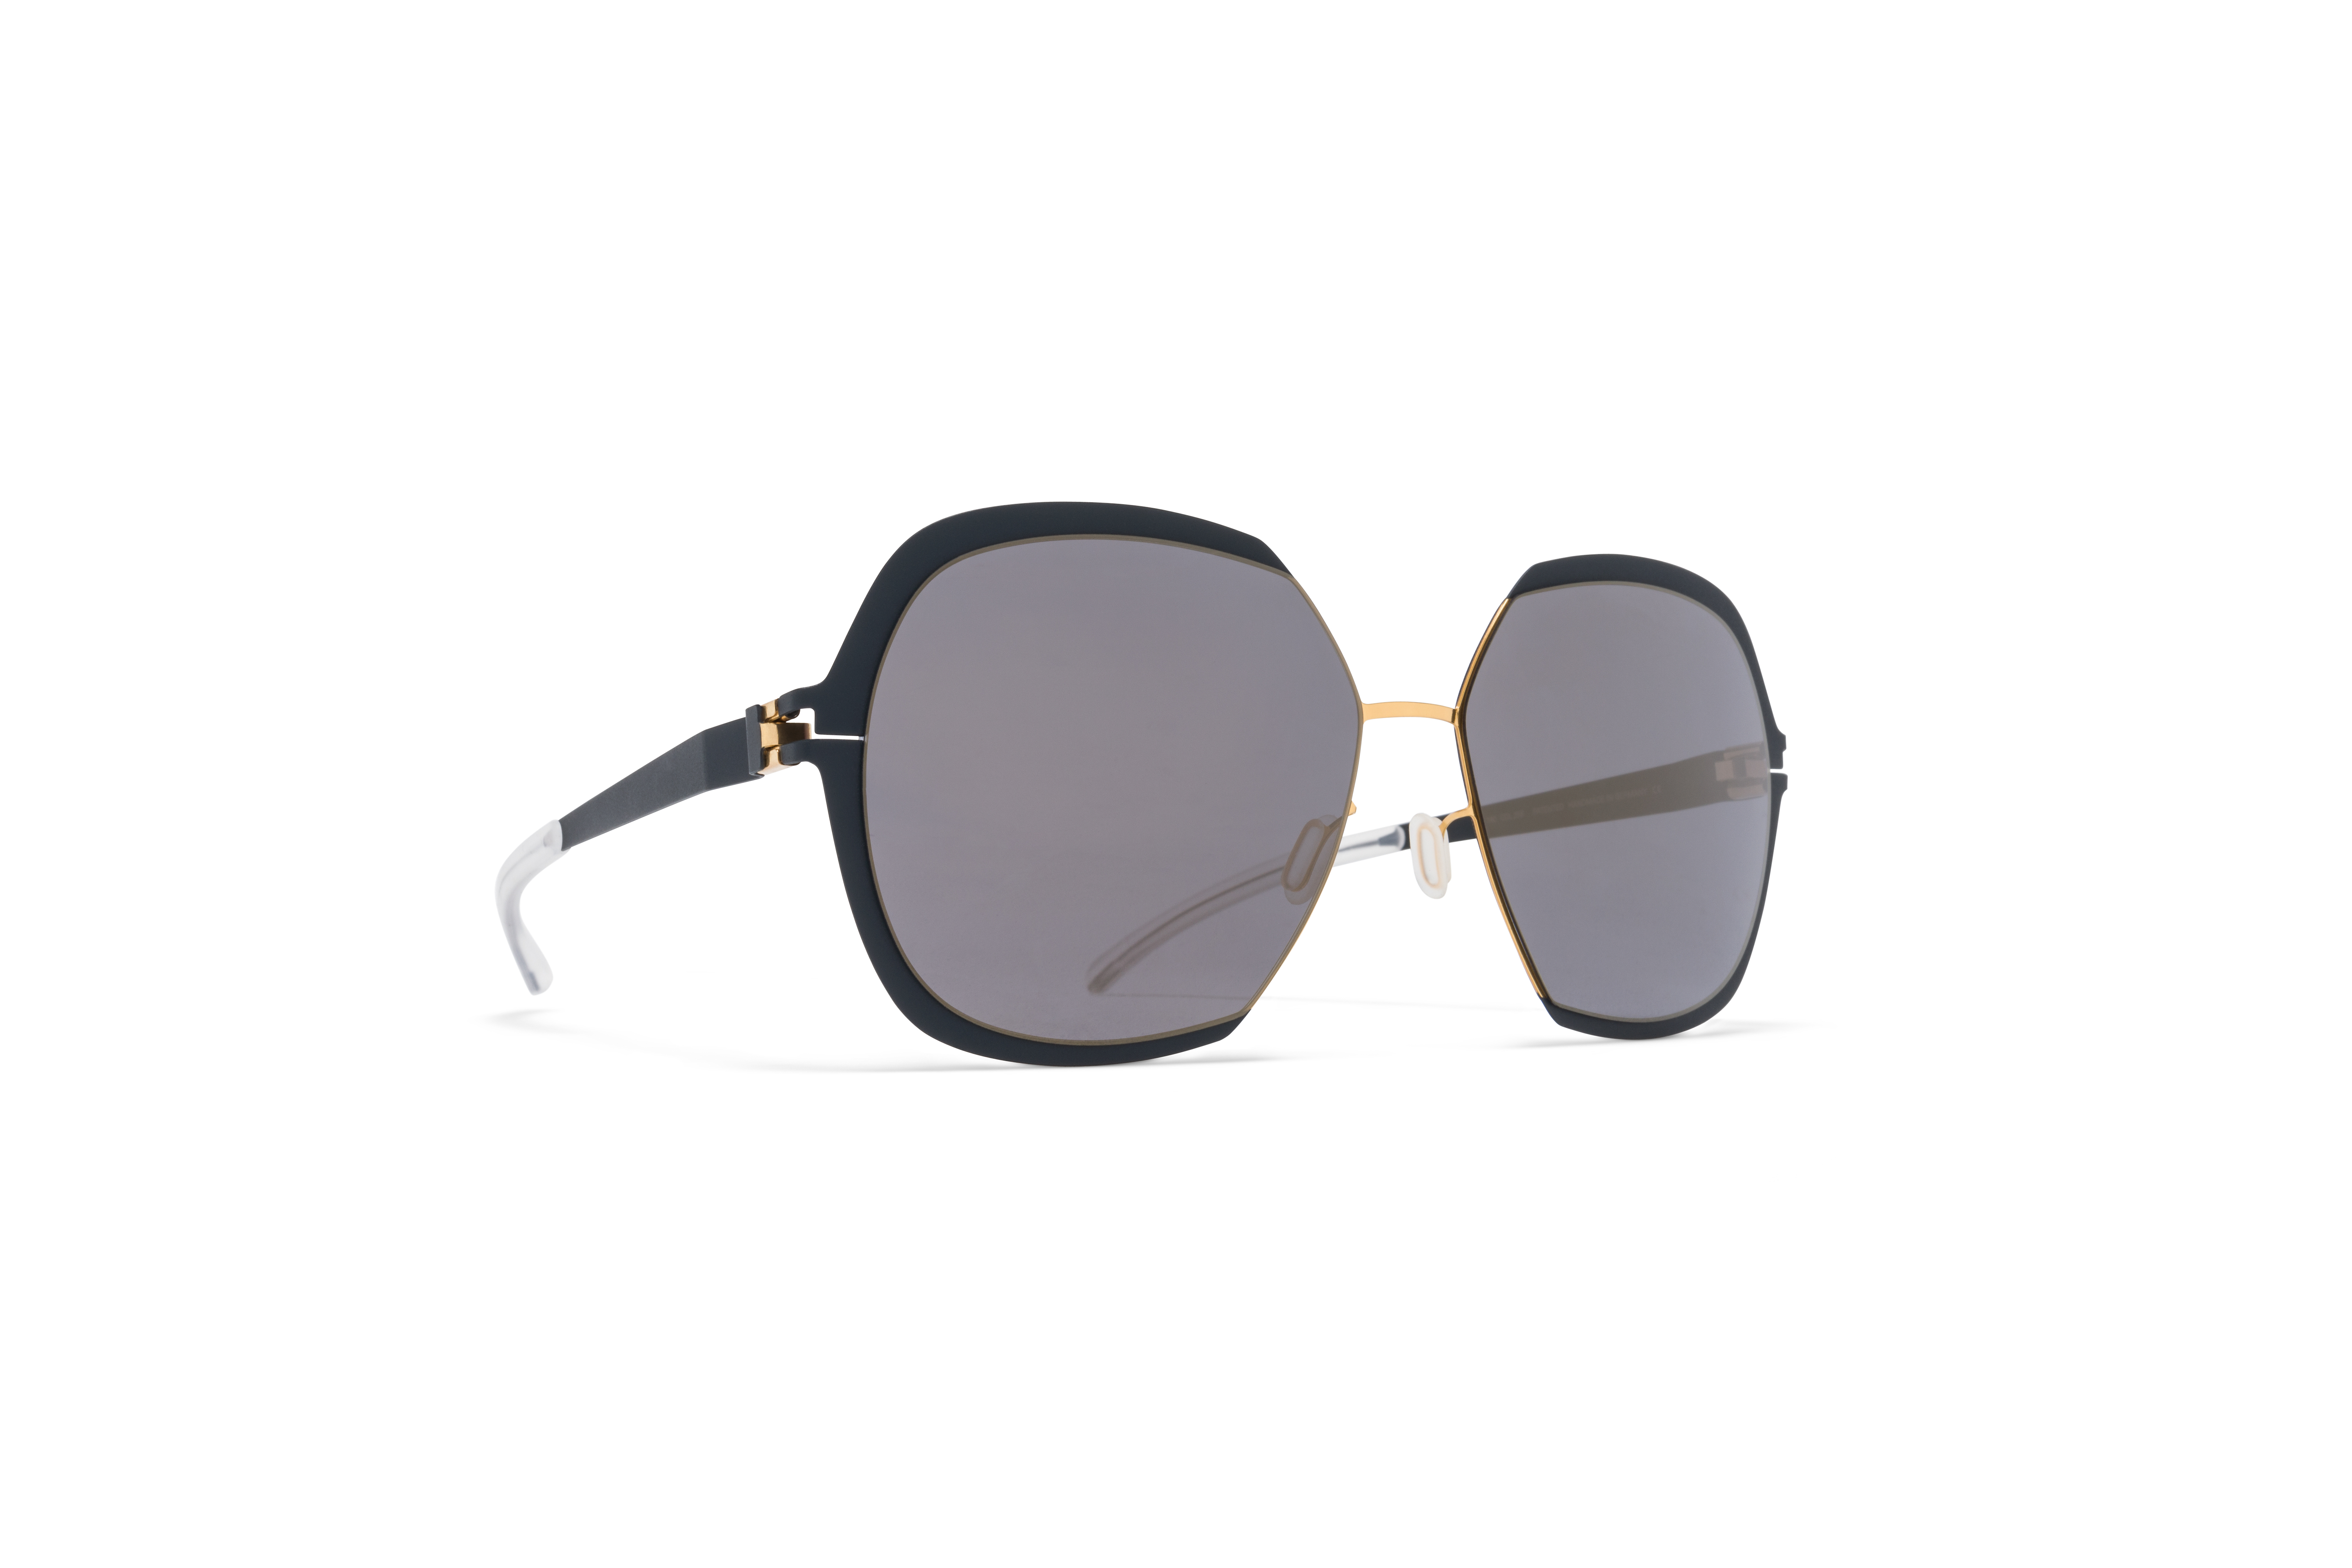 MYKITA Decades Sun Felicia Gold Indigo Brilliant B59fb2292a2c1b